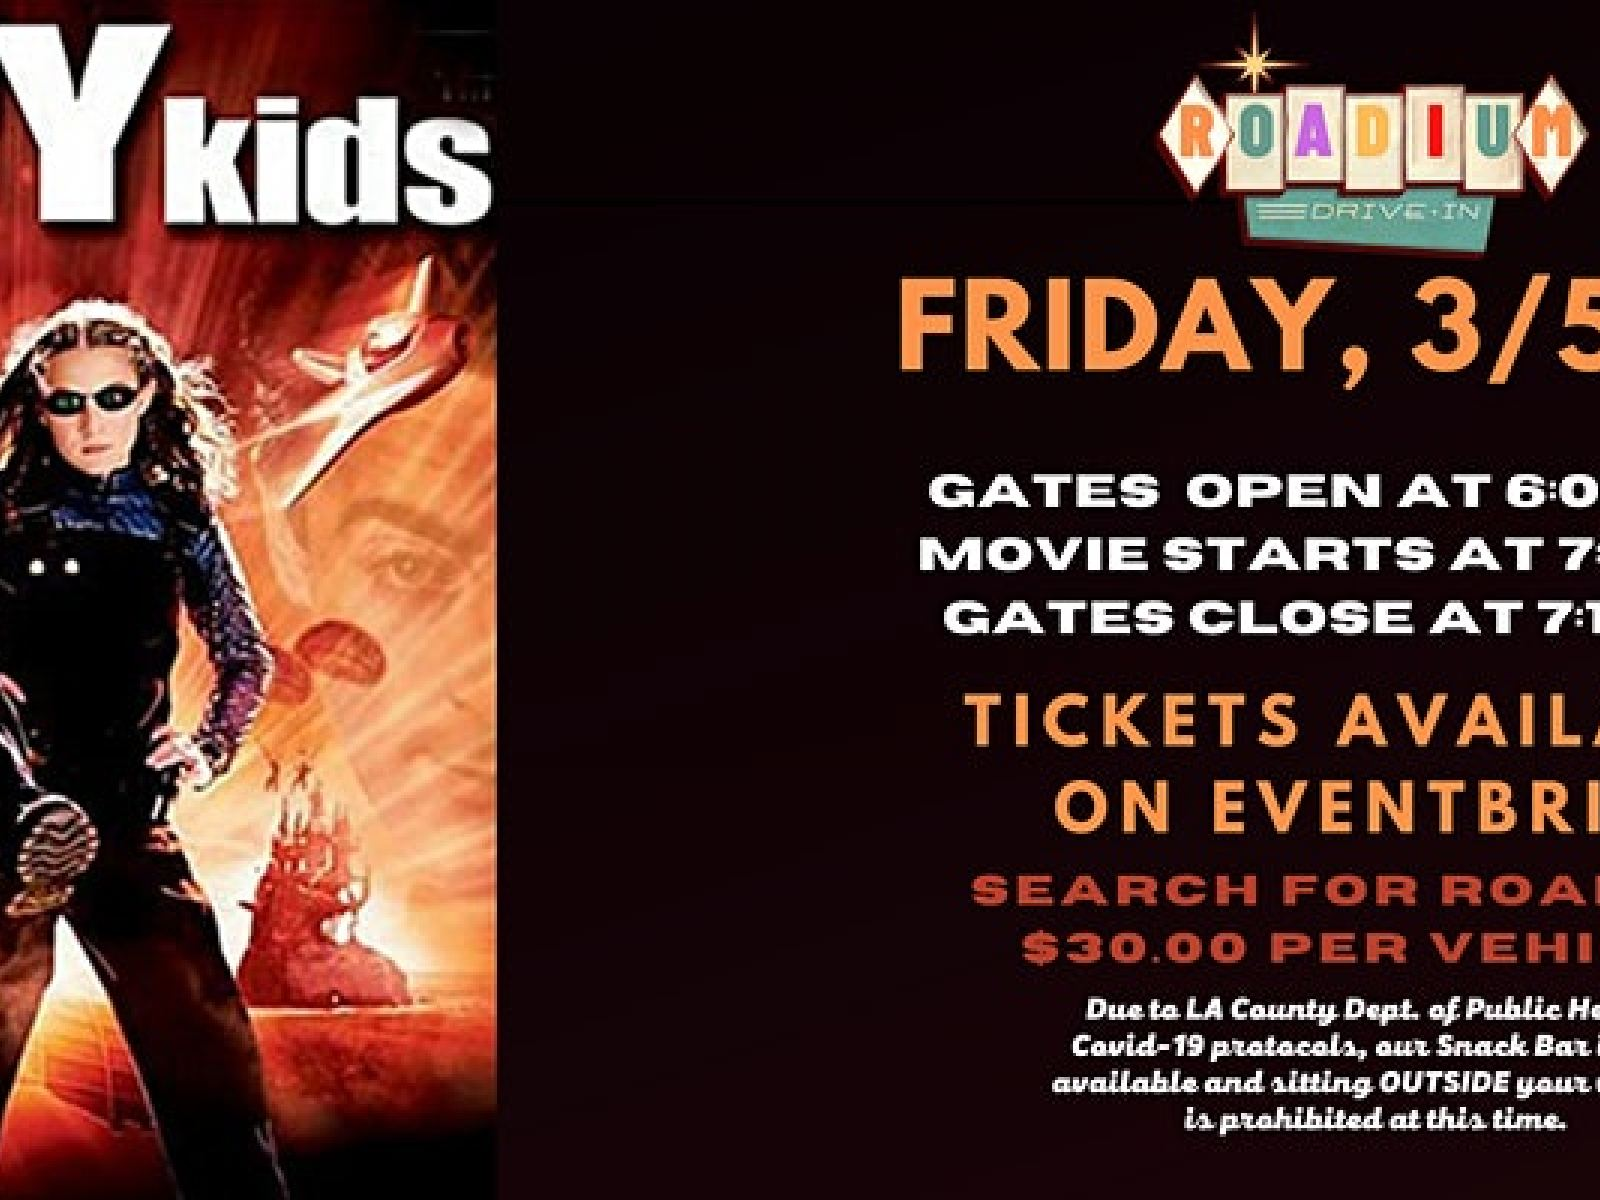 Main image for event titled SPY KIDS - Presented by The Roadium Drive-In